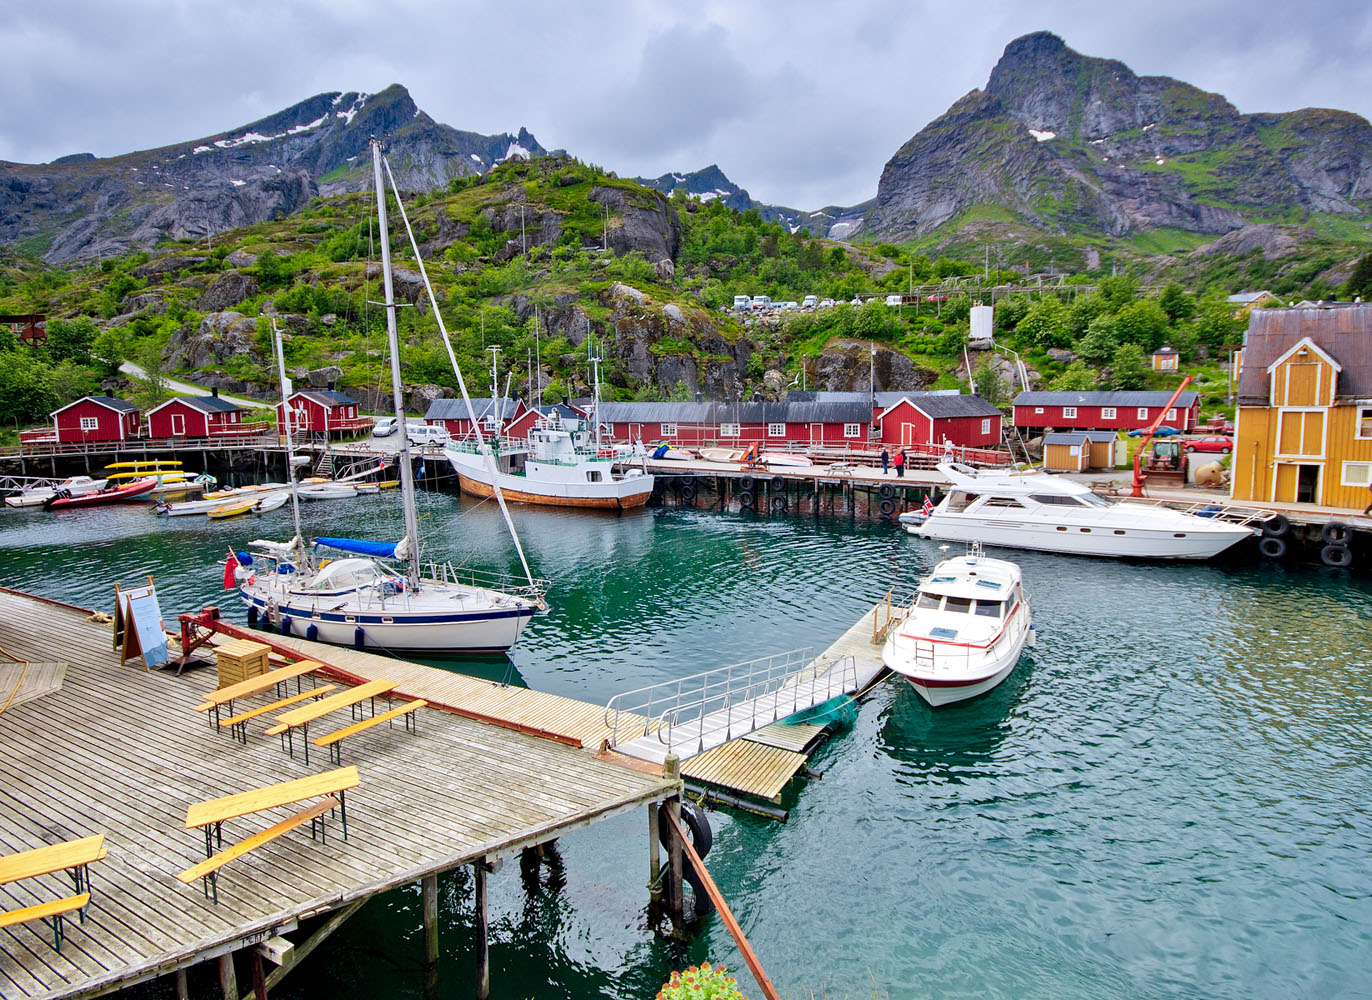 Nusfjord- Oldest fishing village in Norway